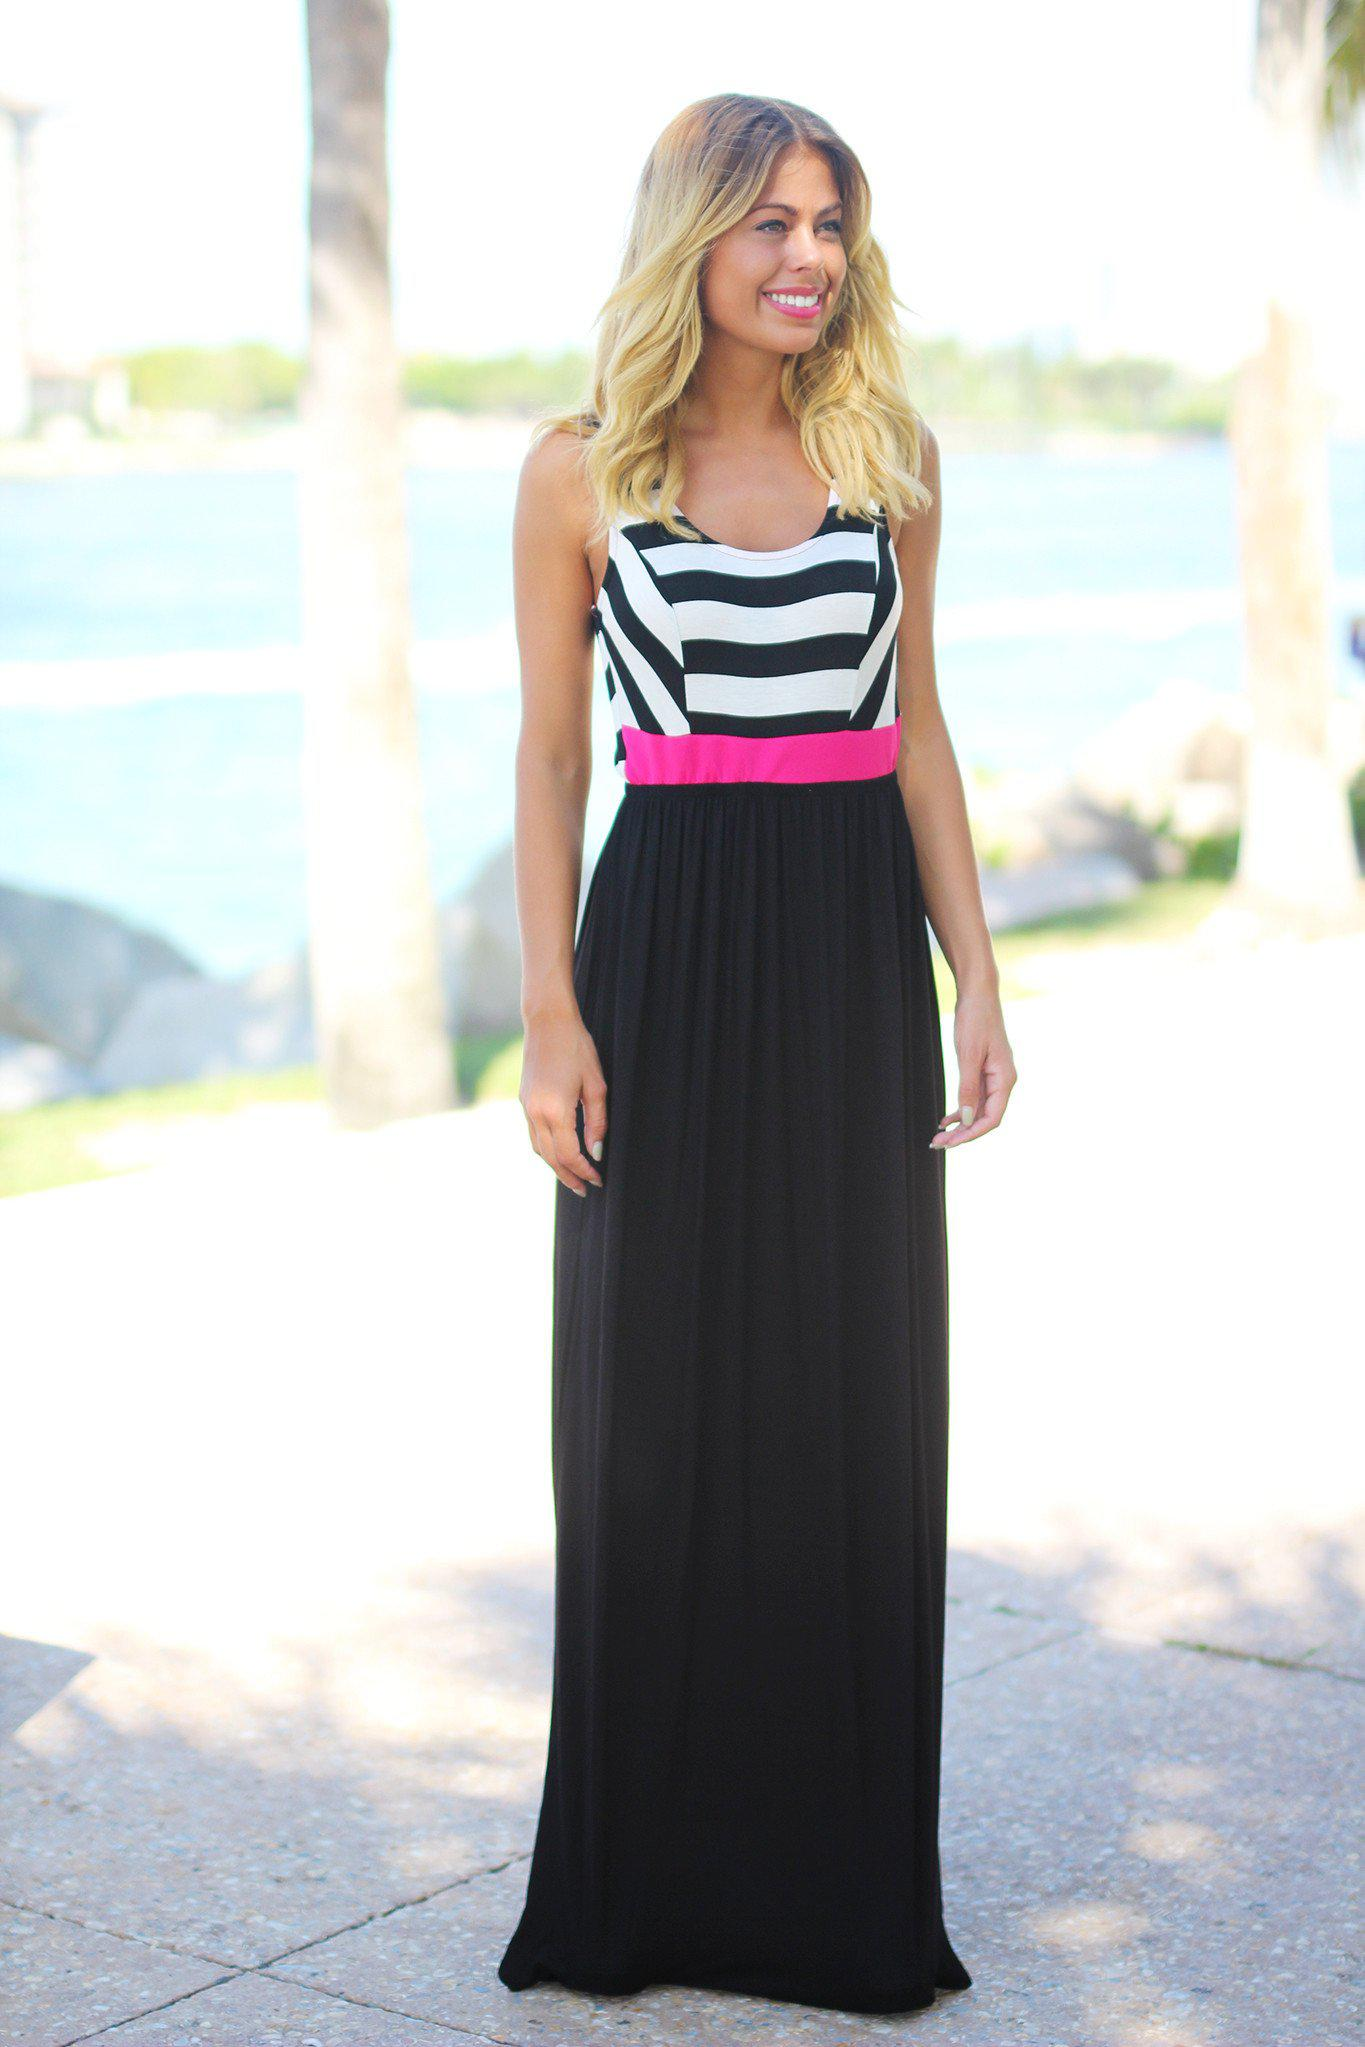 Black and pink maxi dress